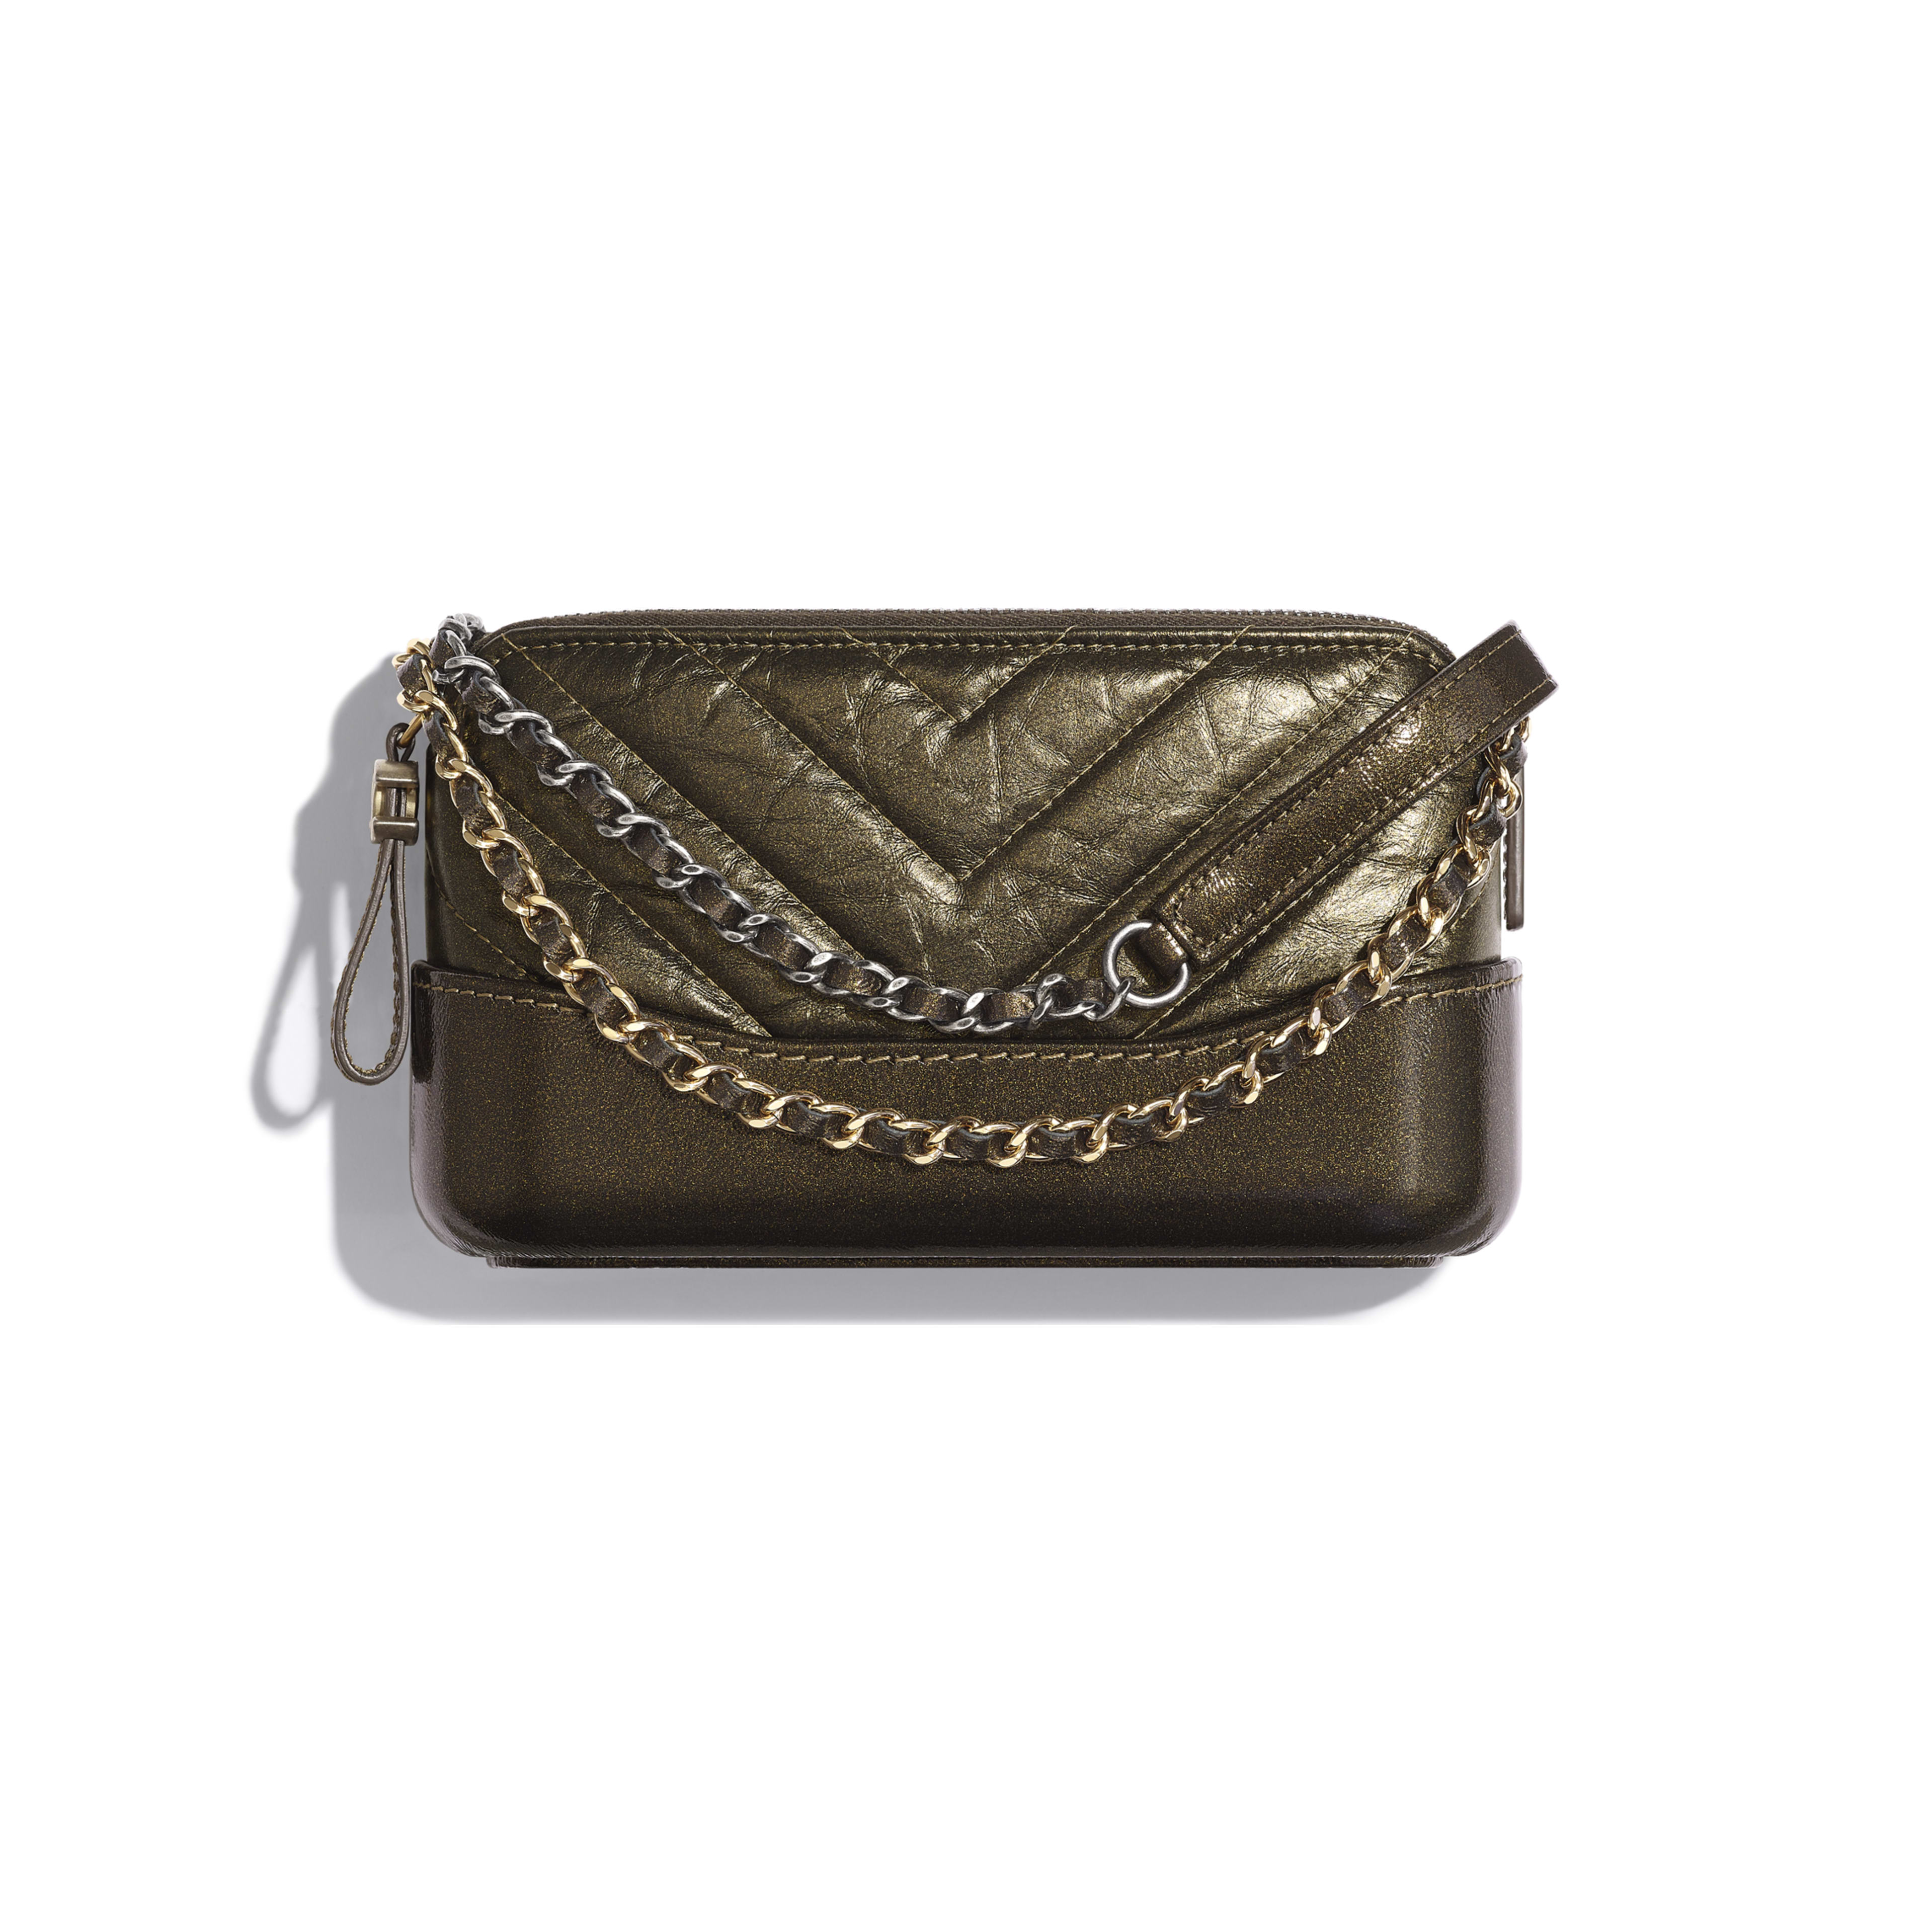 Clutch with Chain - Gold - Glittered Aged Calfskin, Gold-Tone & Silver-Tone Metal - Default view - see full sized version